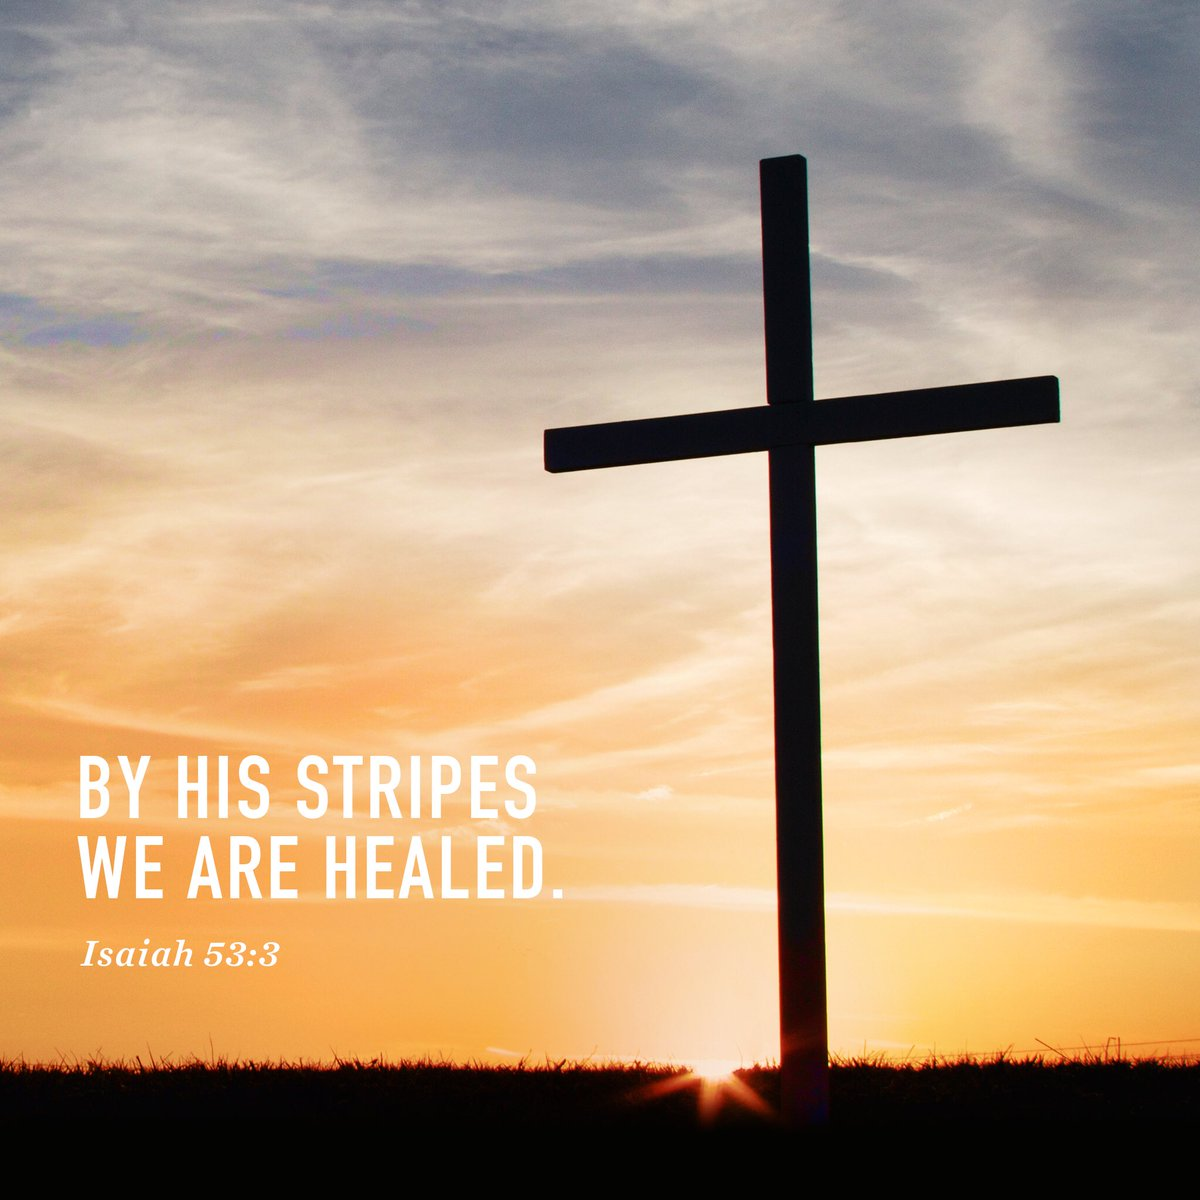 ... and by His stripes we are healed. Is 53:3 #GoodFriday https://t.co/RiezMYQrIz